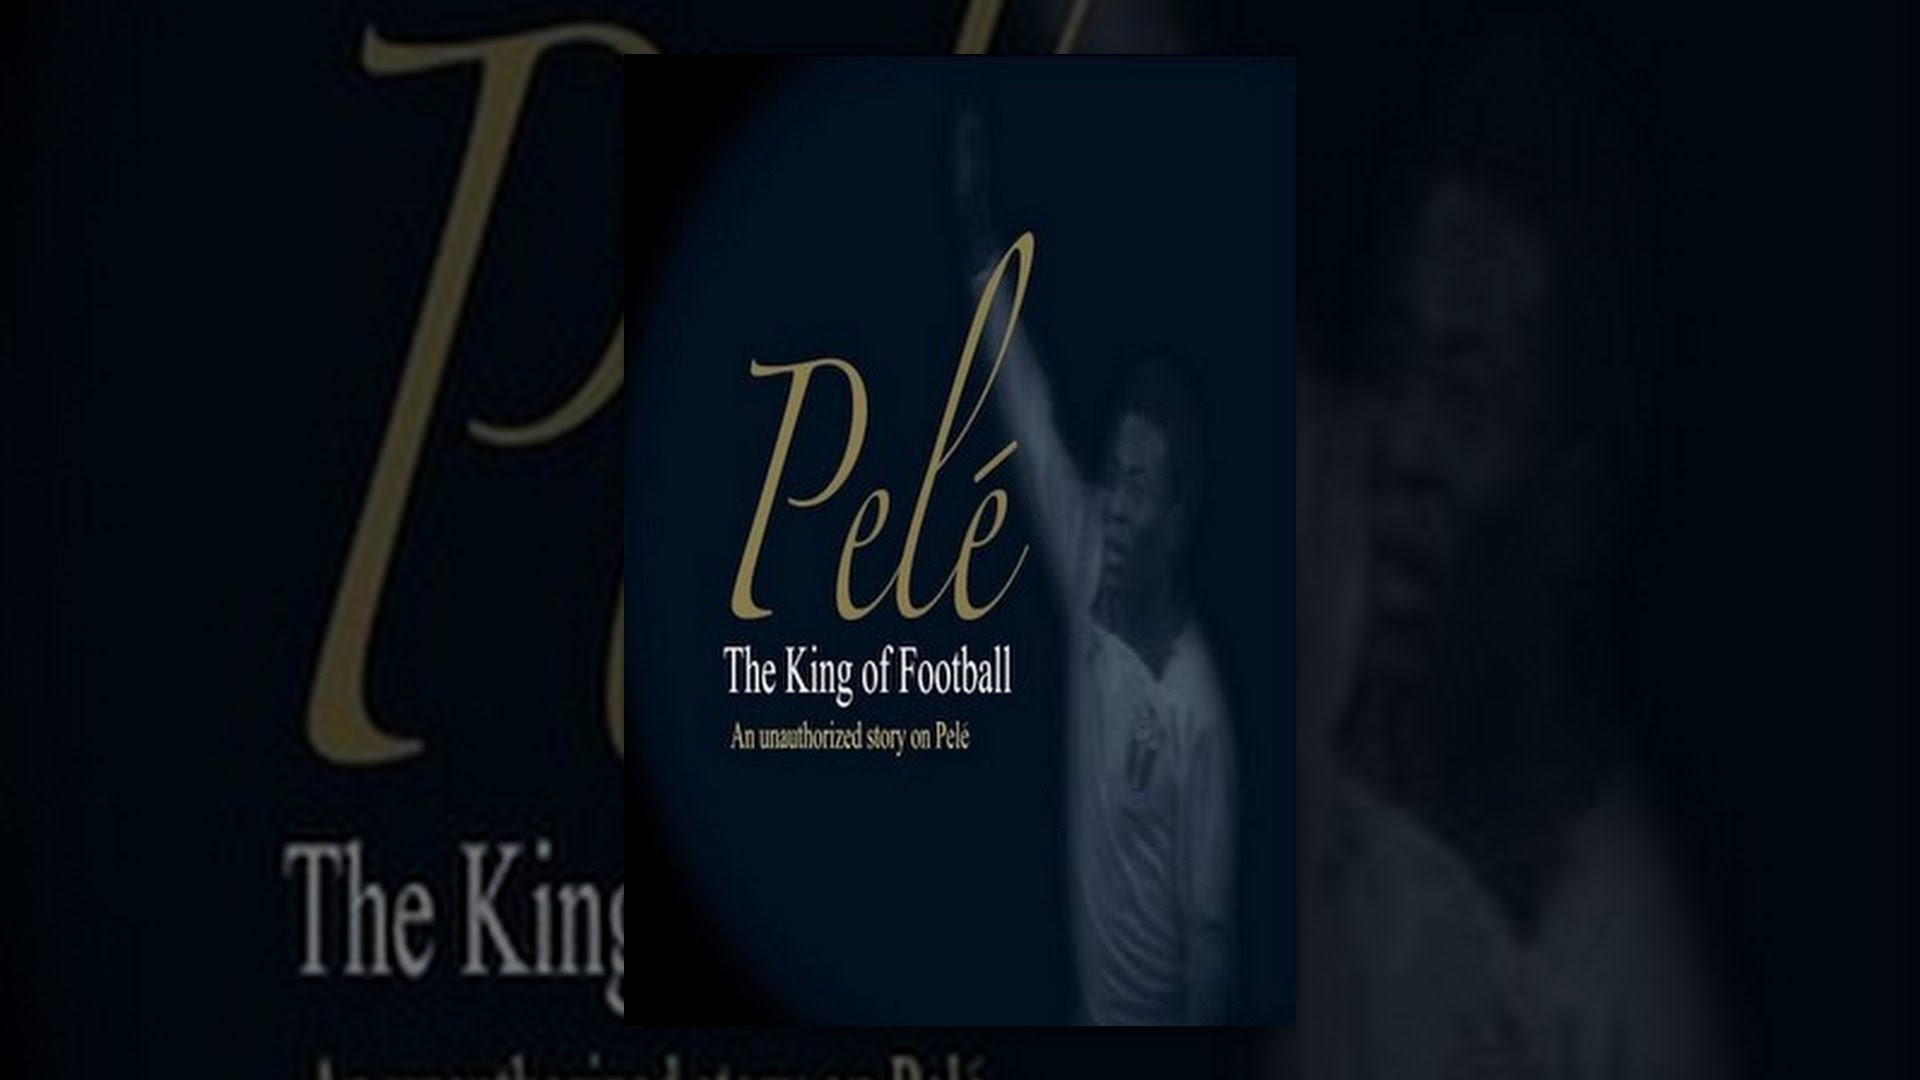 Pele: The King of Football